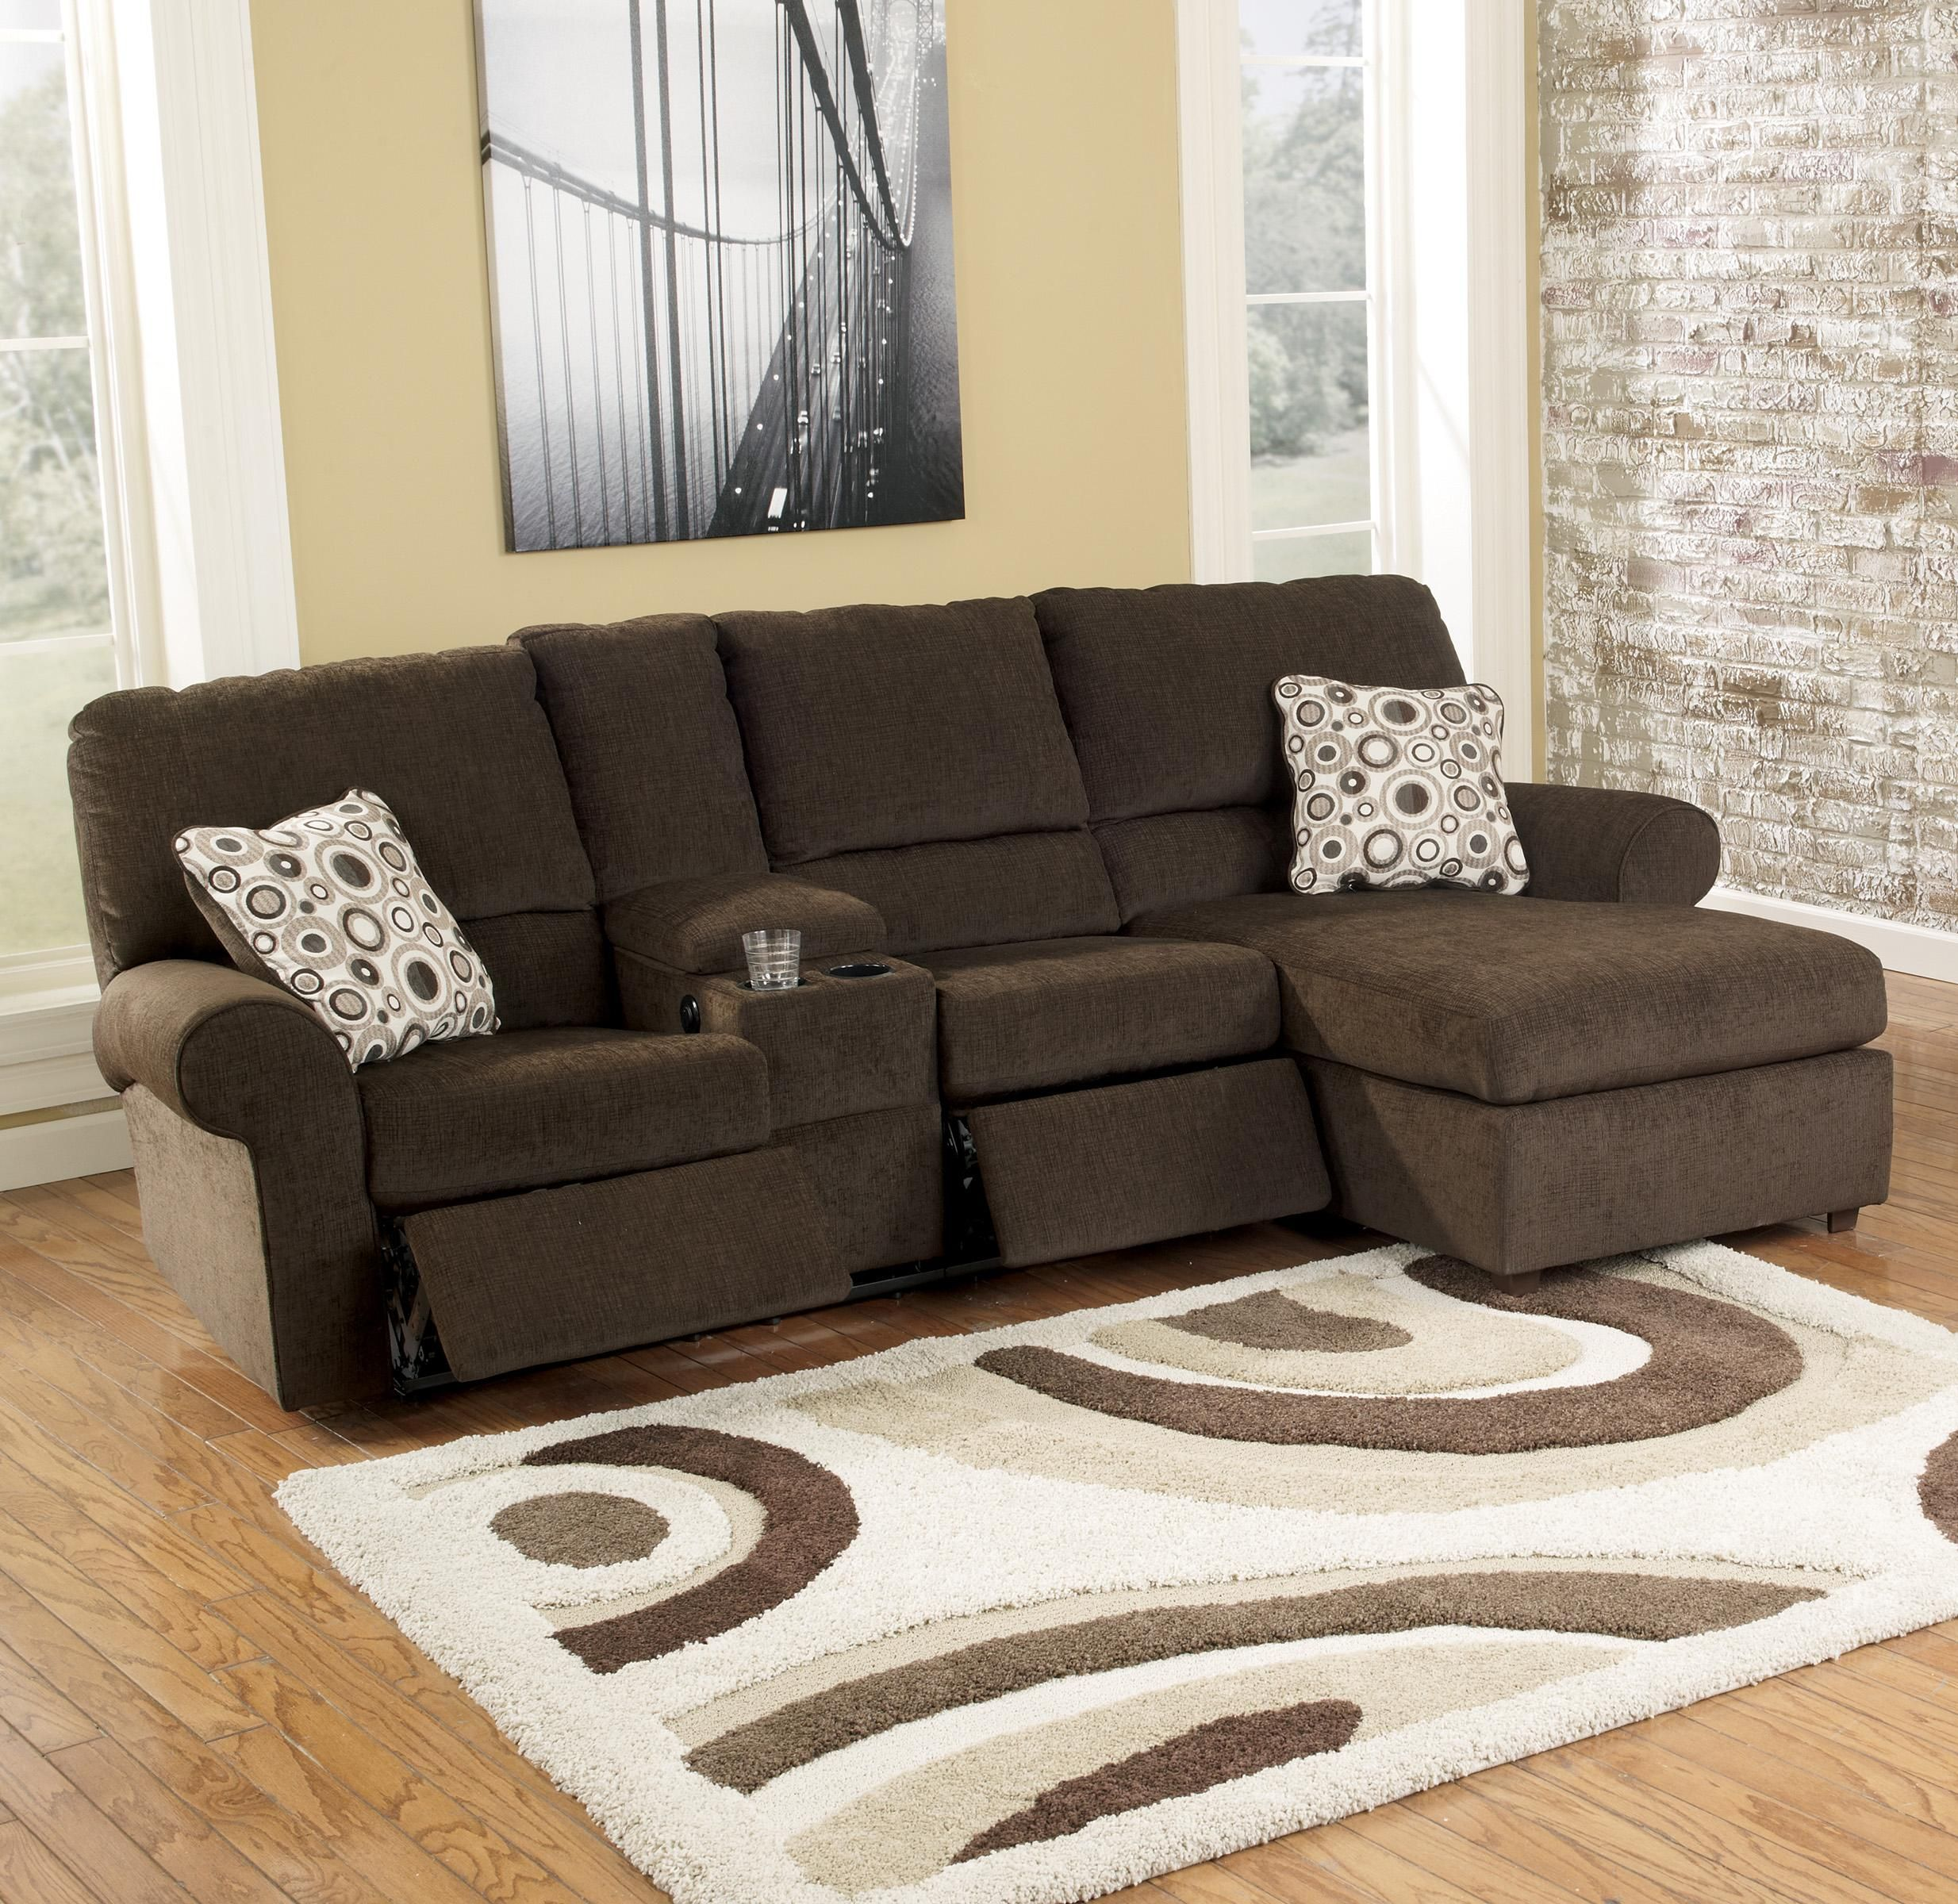 ashley sofa recliners 3 piece set sale cybertrack chocolate power reclining sectional by